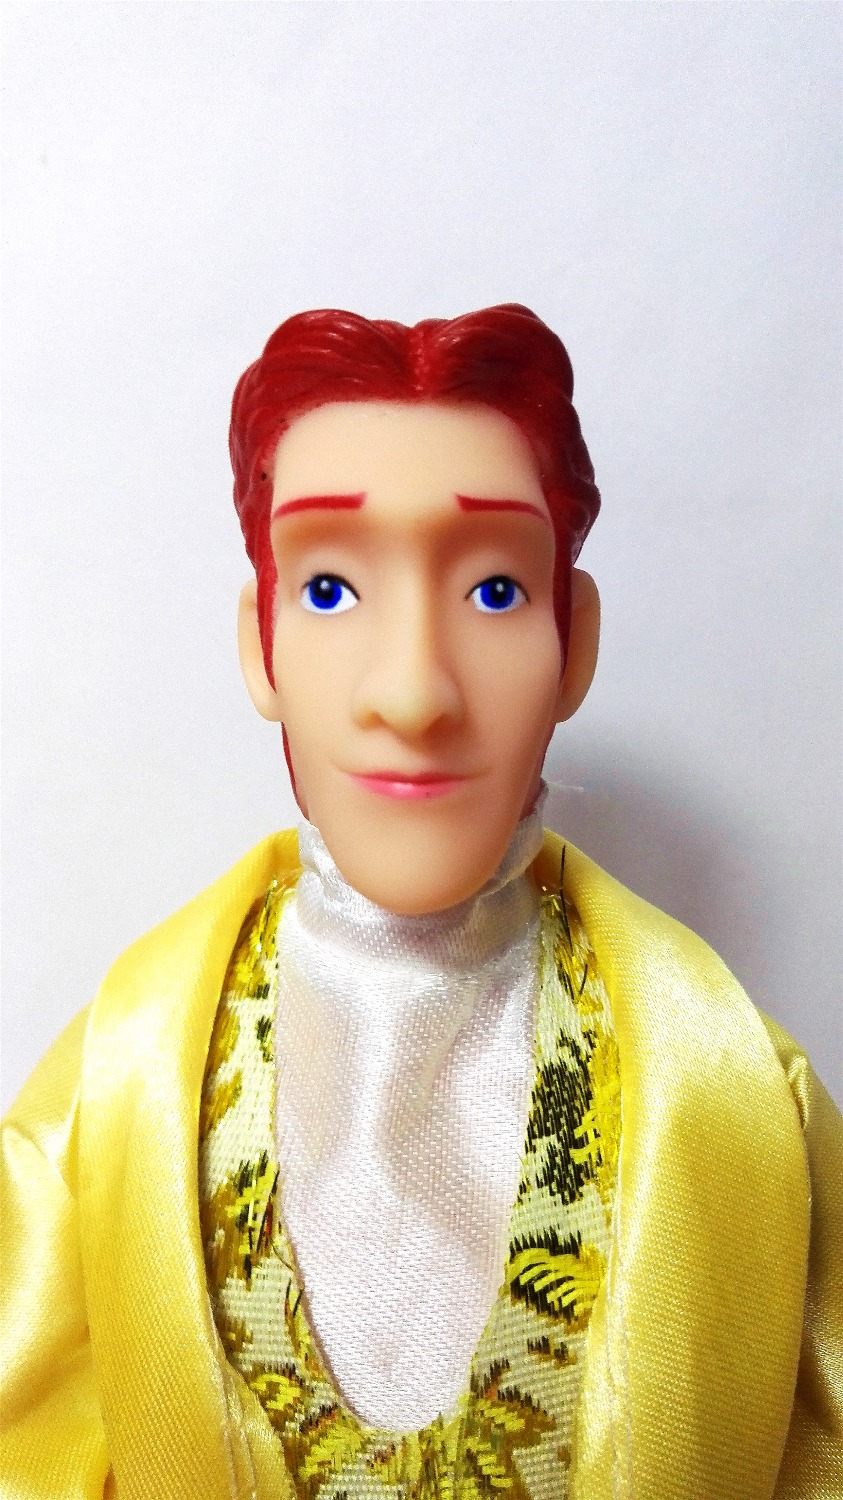 One Pcs Well-liked Boyfriend Prince Ken Male Doll Head For Prince Doll For Barbie Frozenfriend Doll Equipment